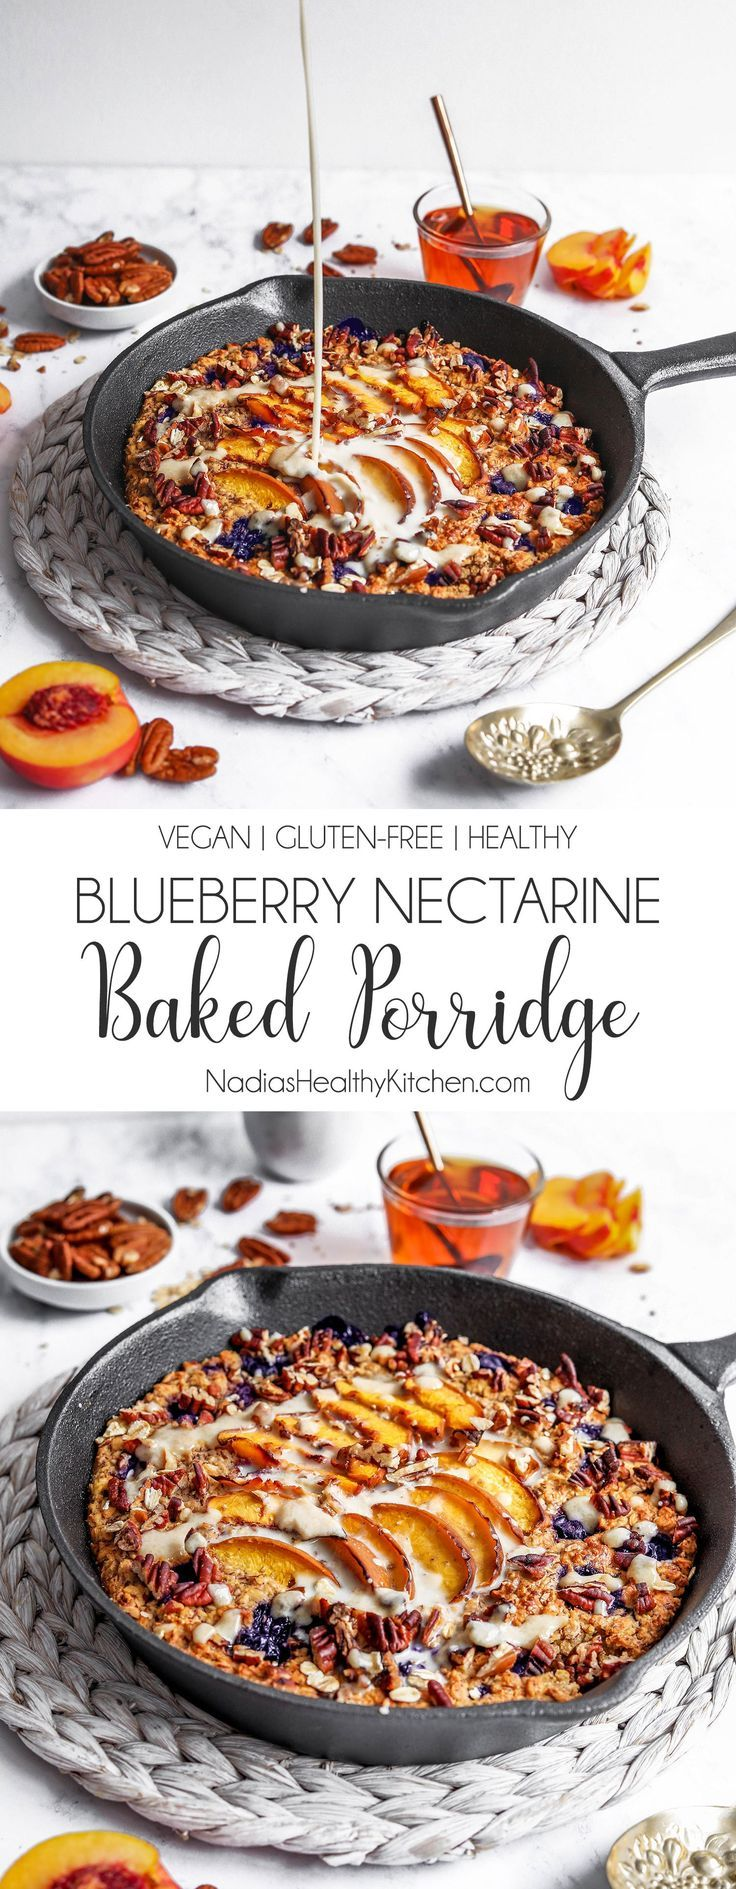 Photo of Blueberry Nectarine Baked Porridge – UK Health Blog – Nadia's Healthy Kitchen